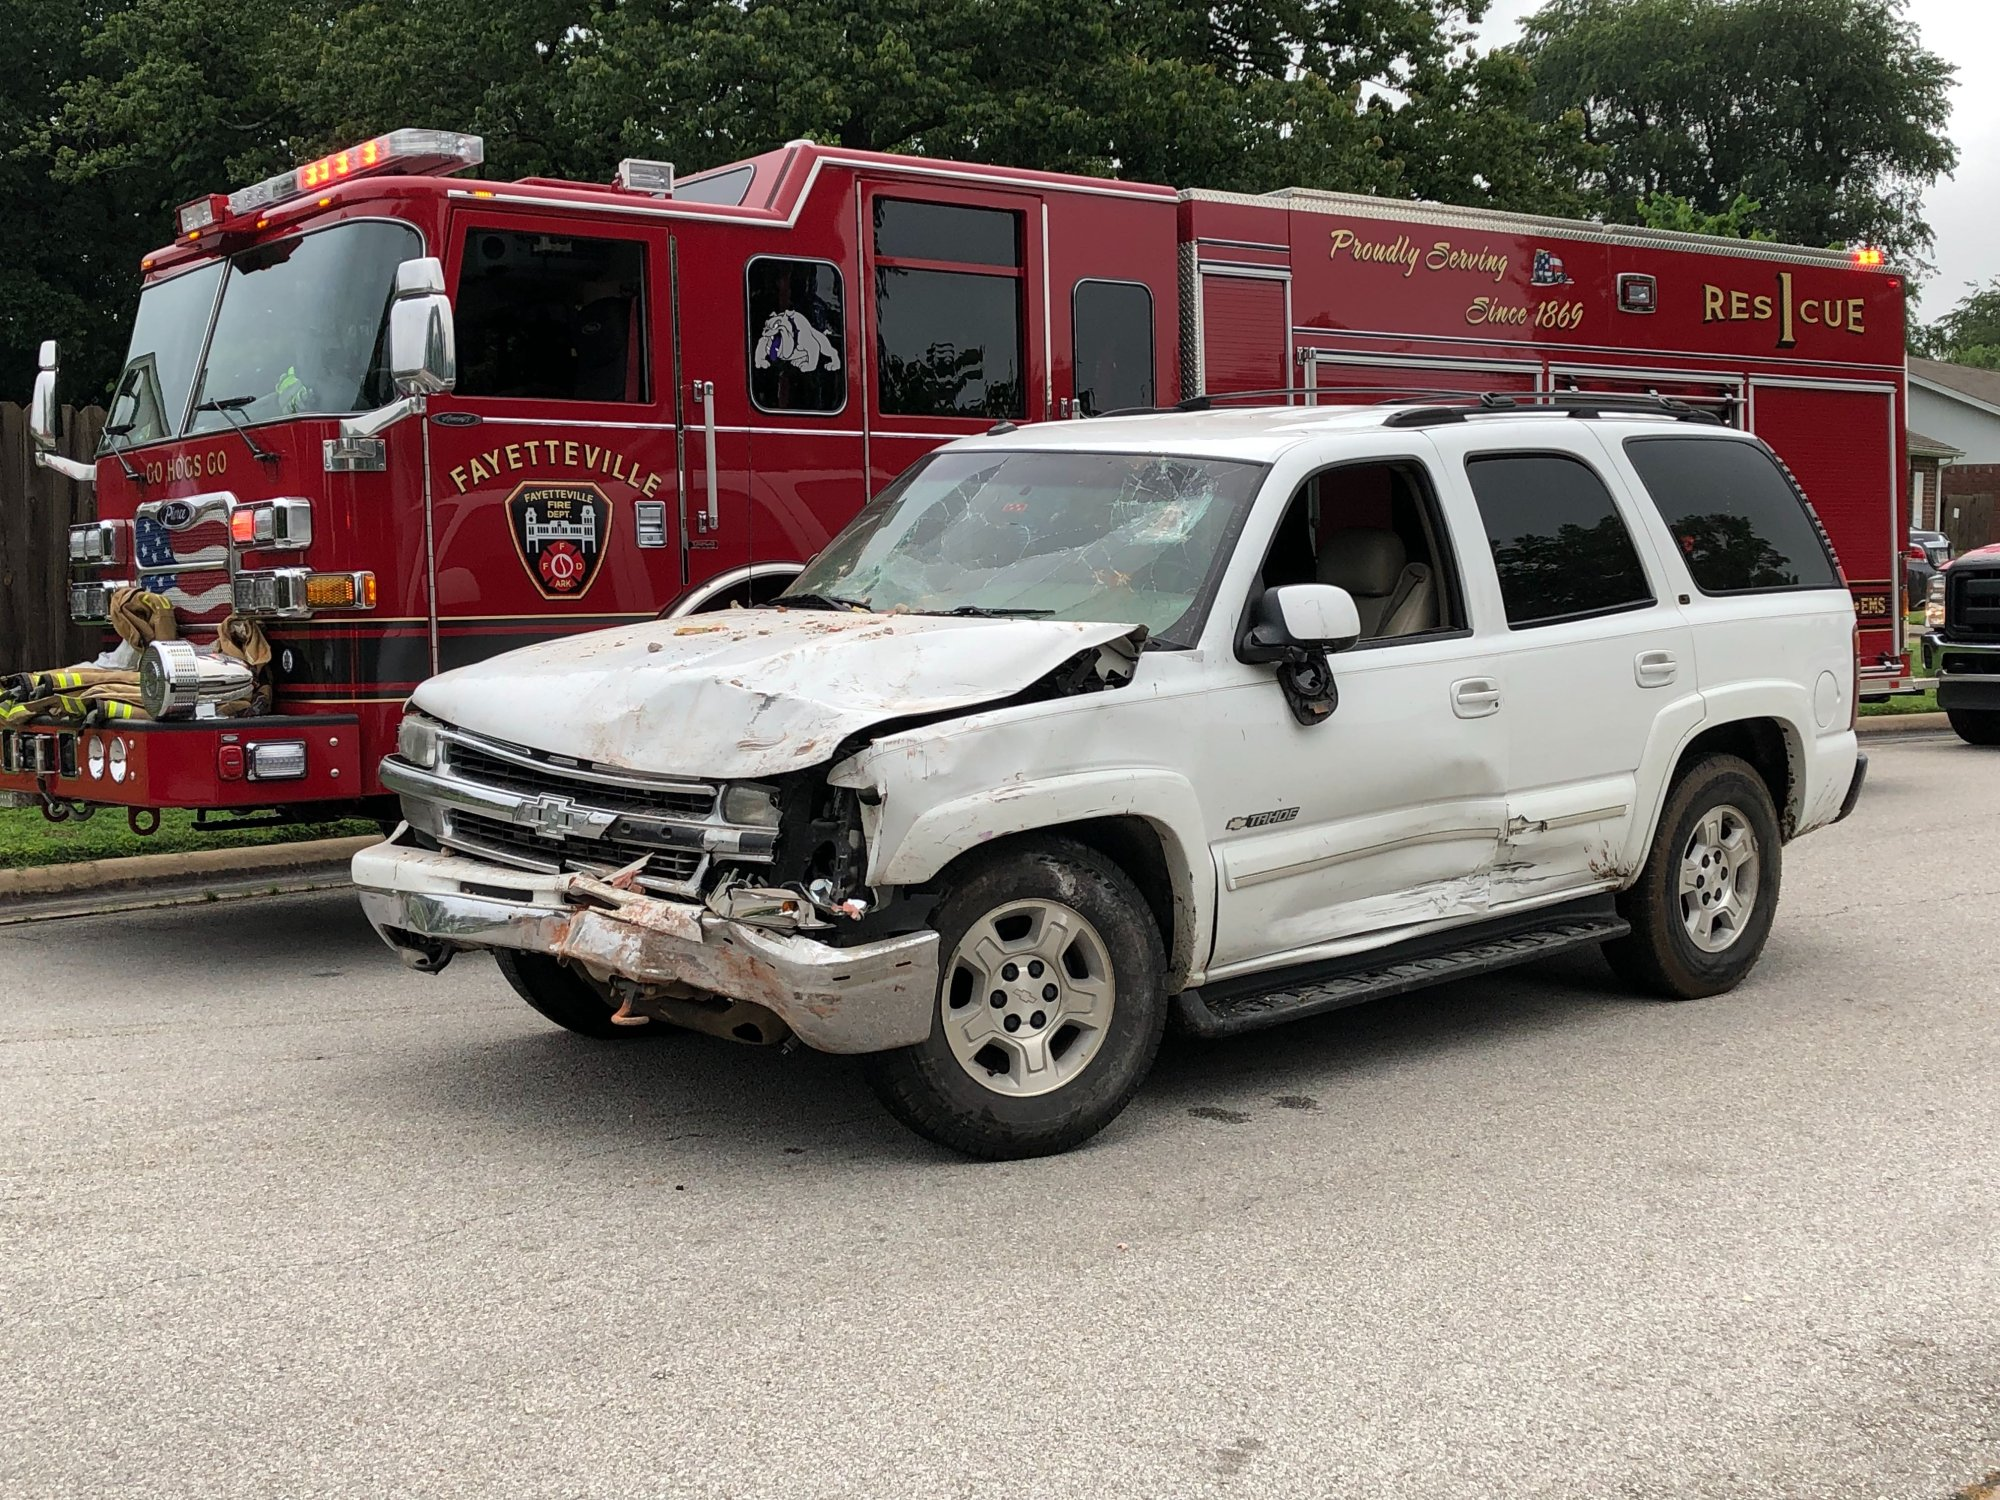 A white Chevrolet Tahoe shows front-end damage where it hit a brick house on High Avenue in Fayetteville on Thursday, May 30, 2019. (KFSM)